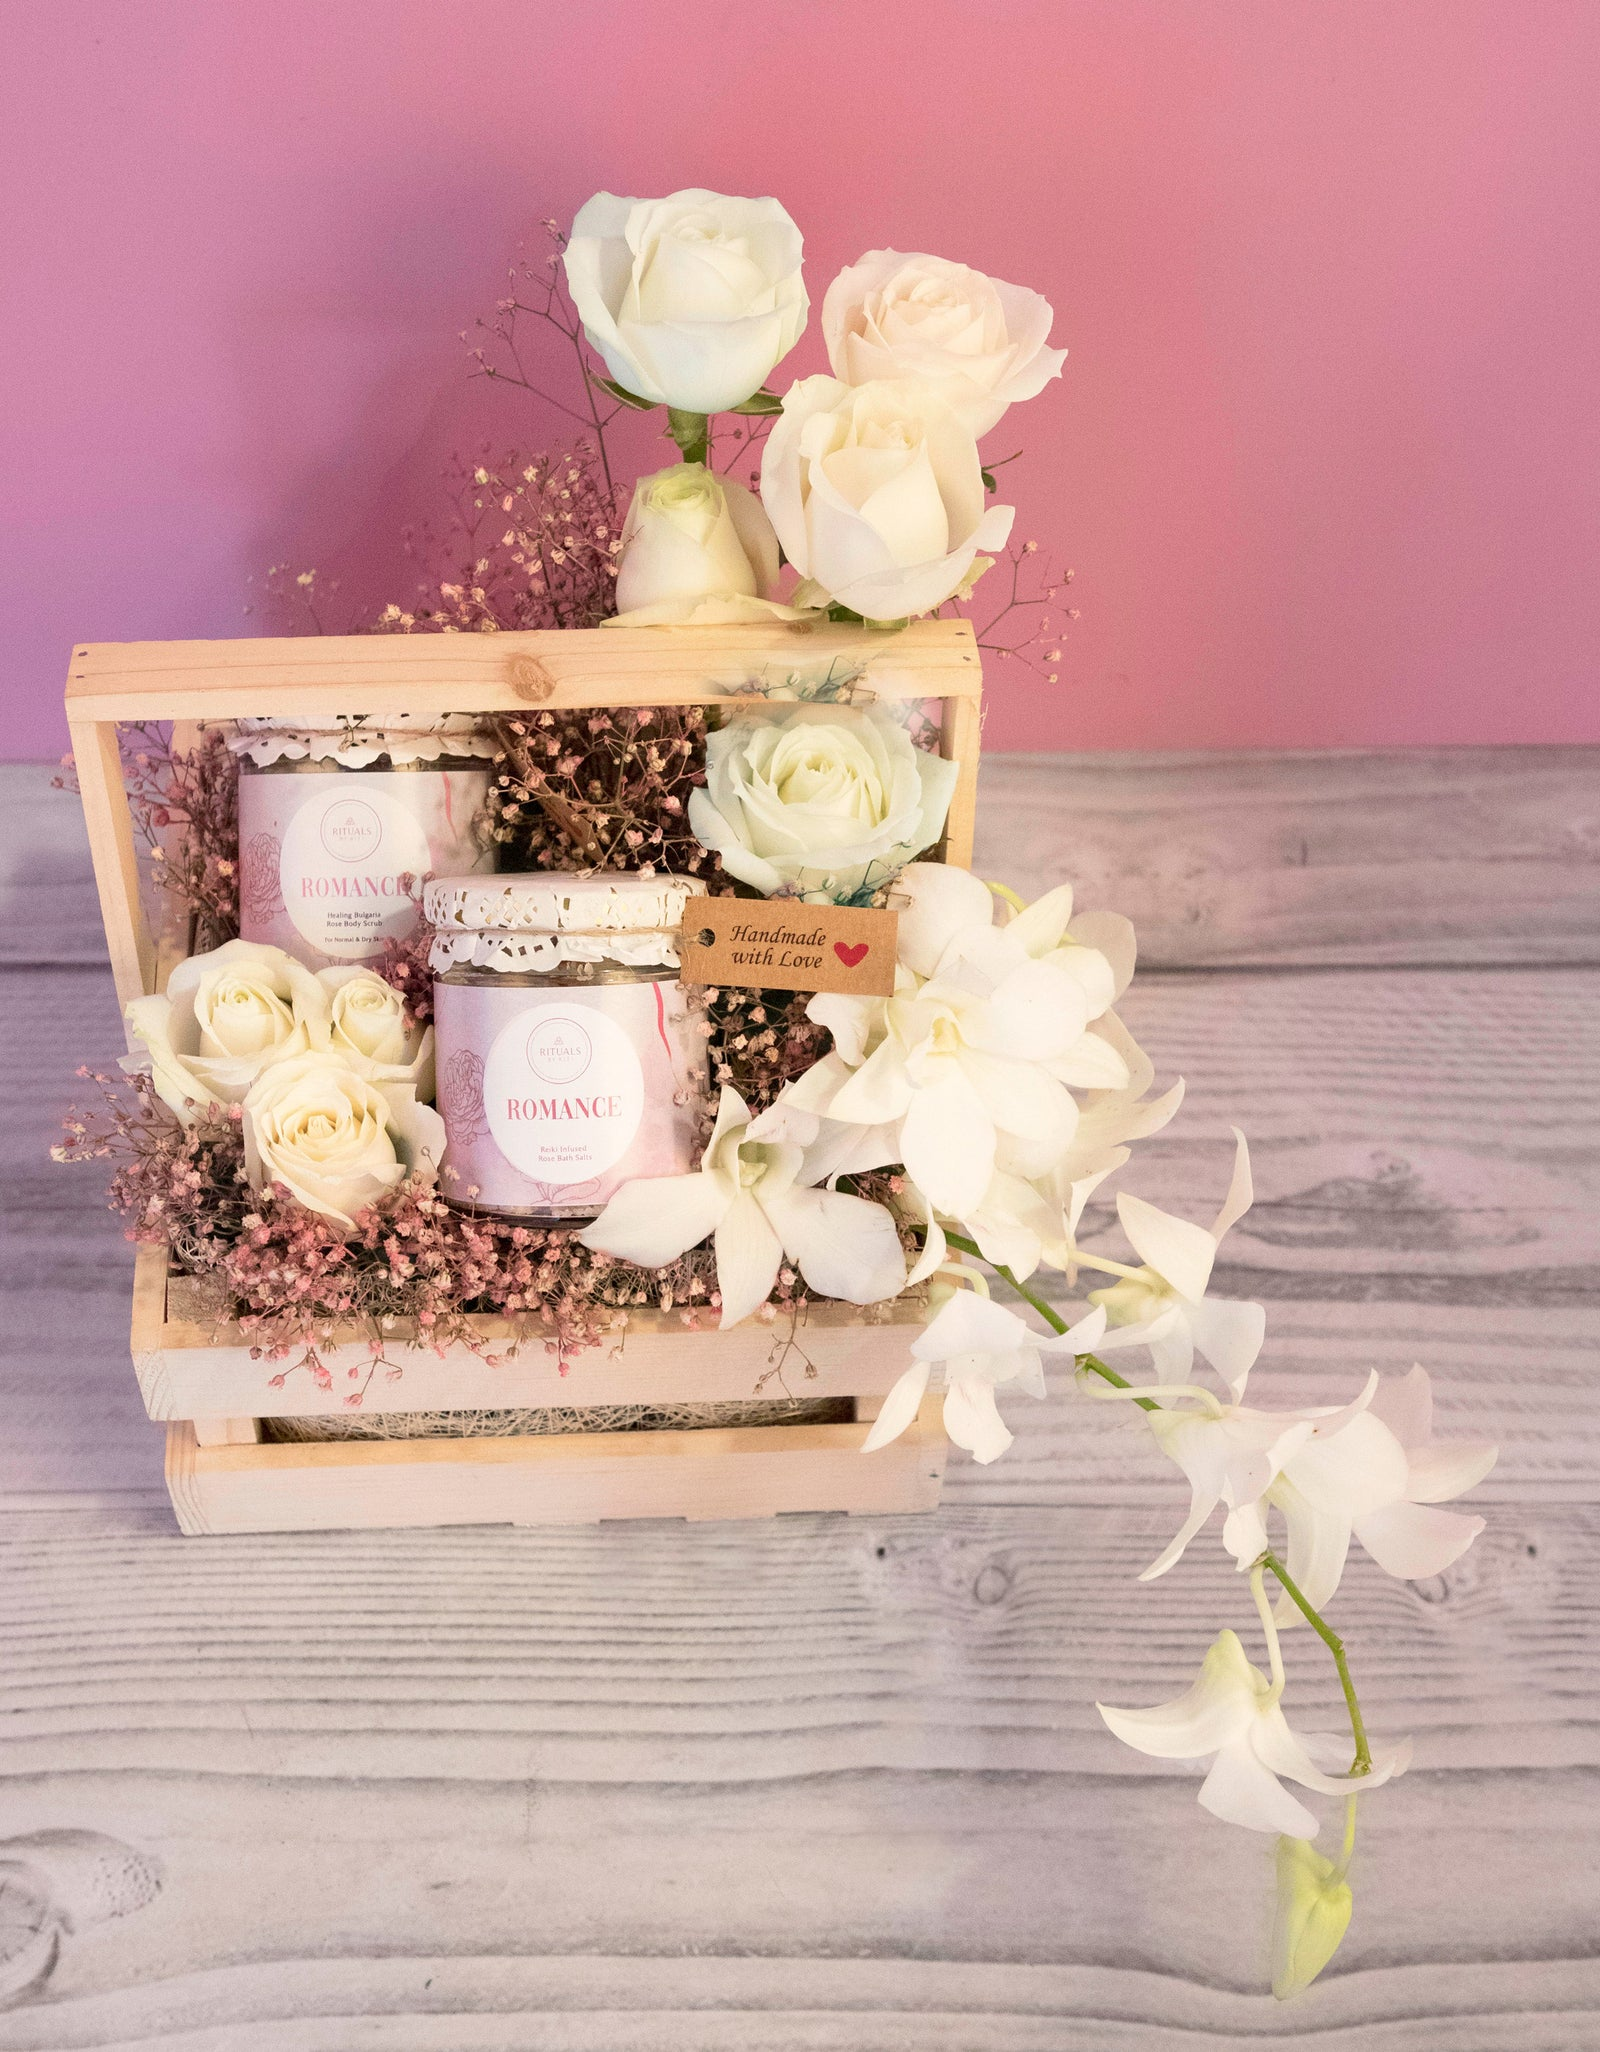 Salts and Scrub Floral Hamper(Reiki Infused)